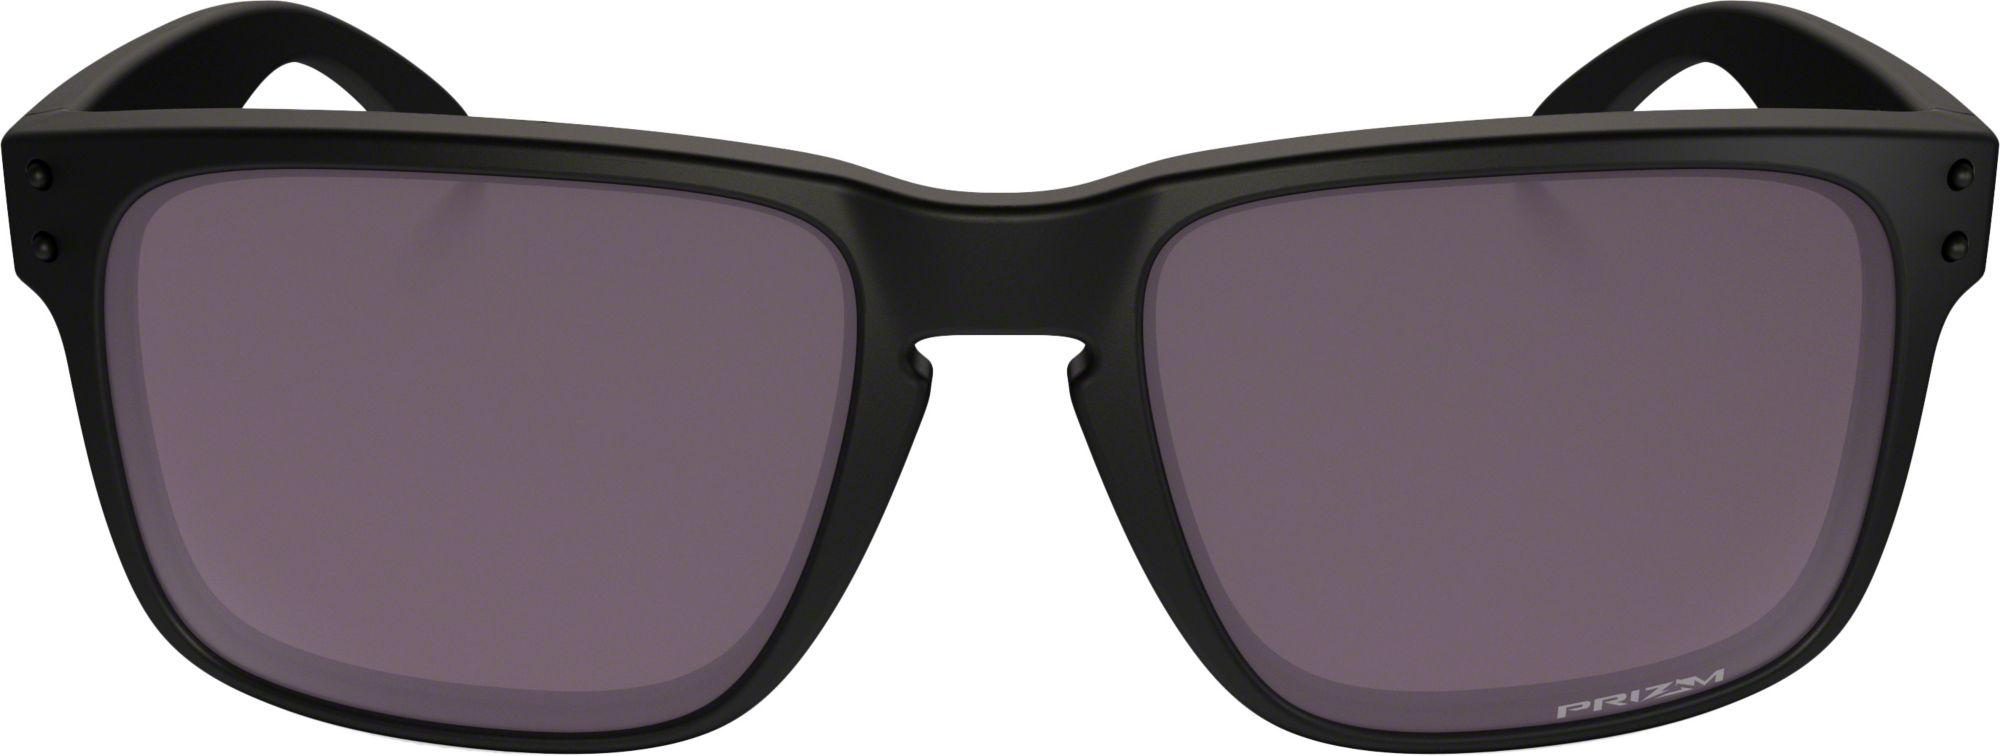 45a75946c4e Lyst - Oakley Covert Prizm Daily Holbrook Sunglasses in Black for Men